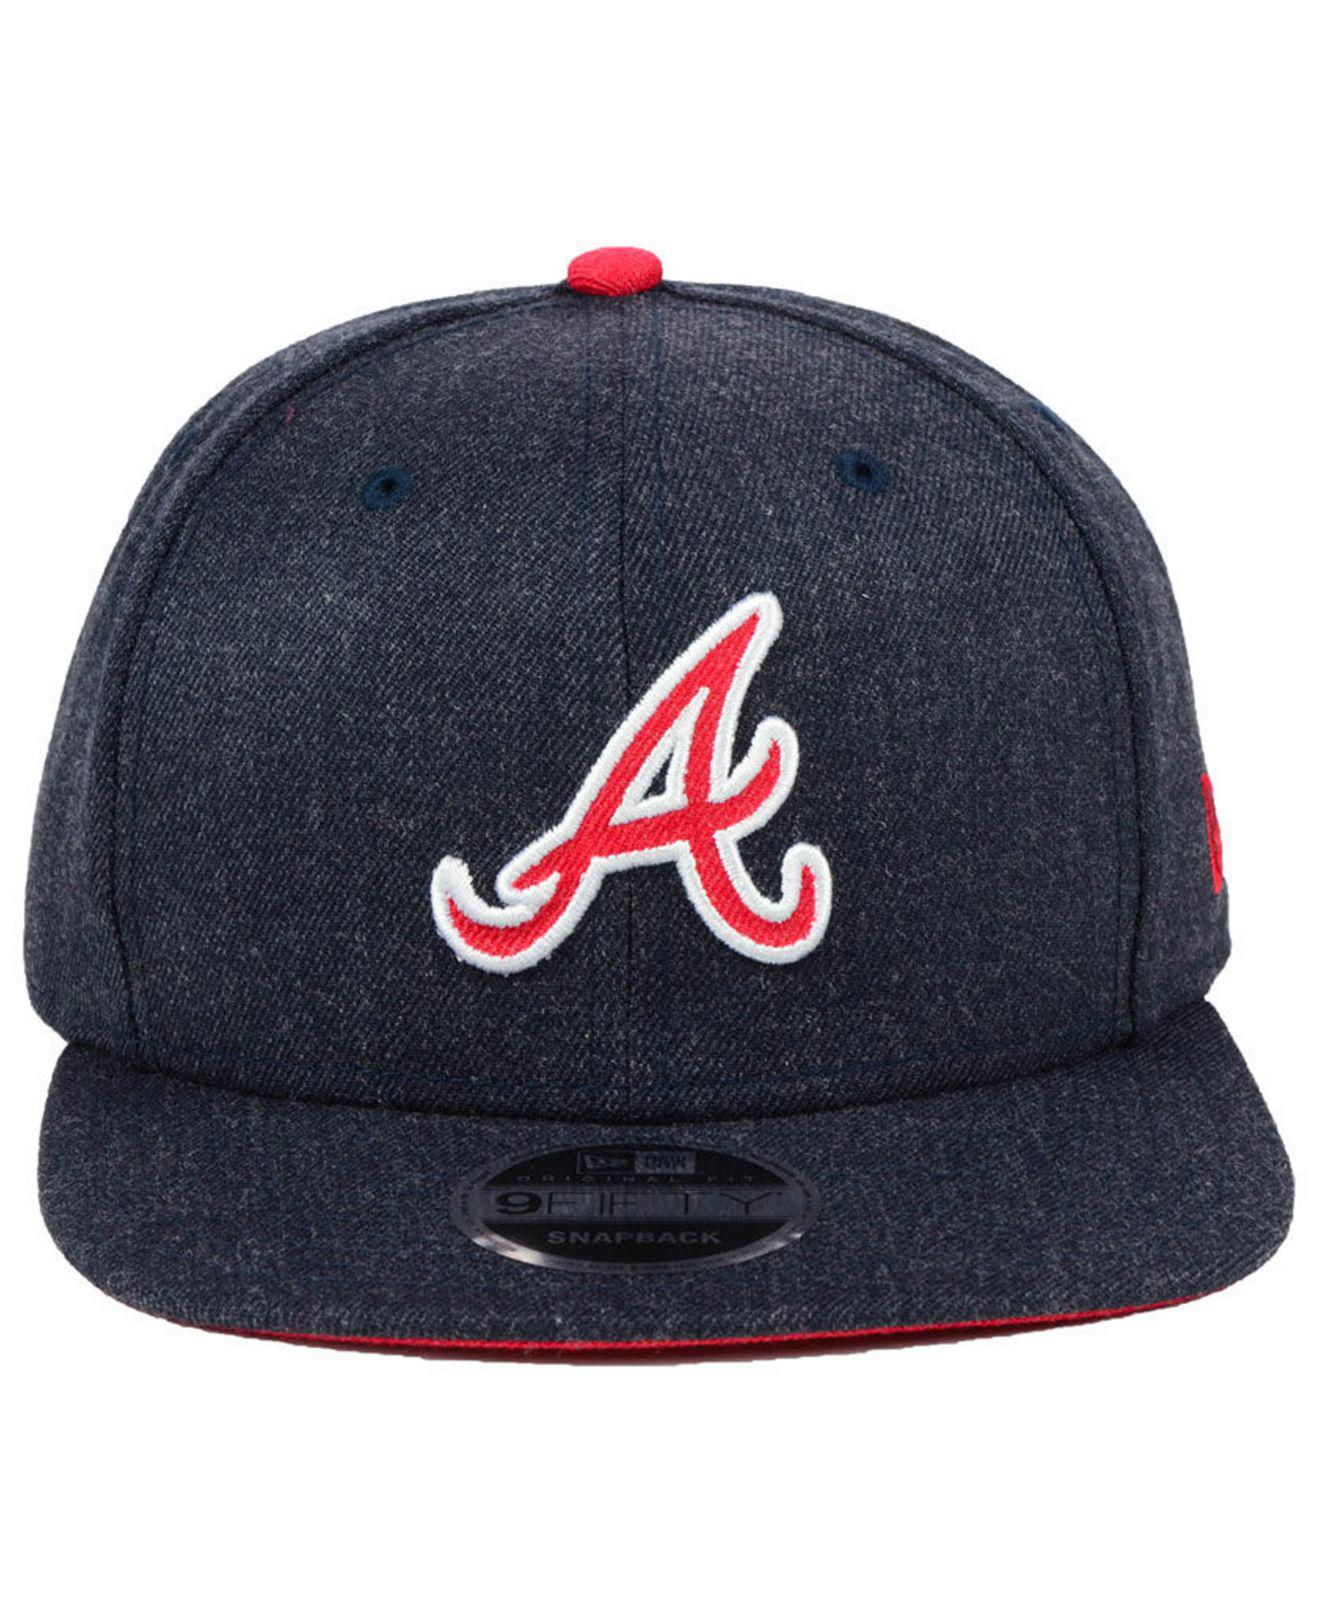 new product 5f4fd 73965 Lyst - KTZ Atlanta Braves Heather Hype 9fifty Snapback Cap in Blue ...